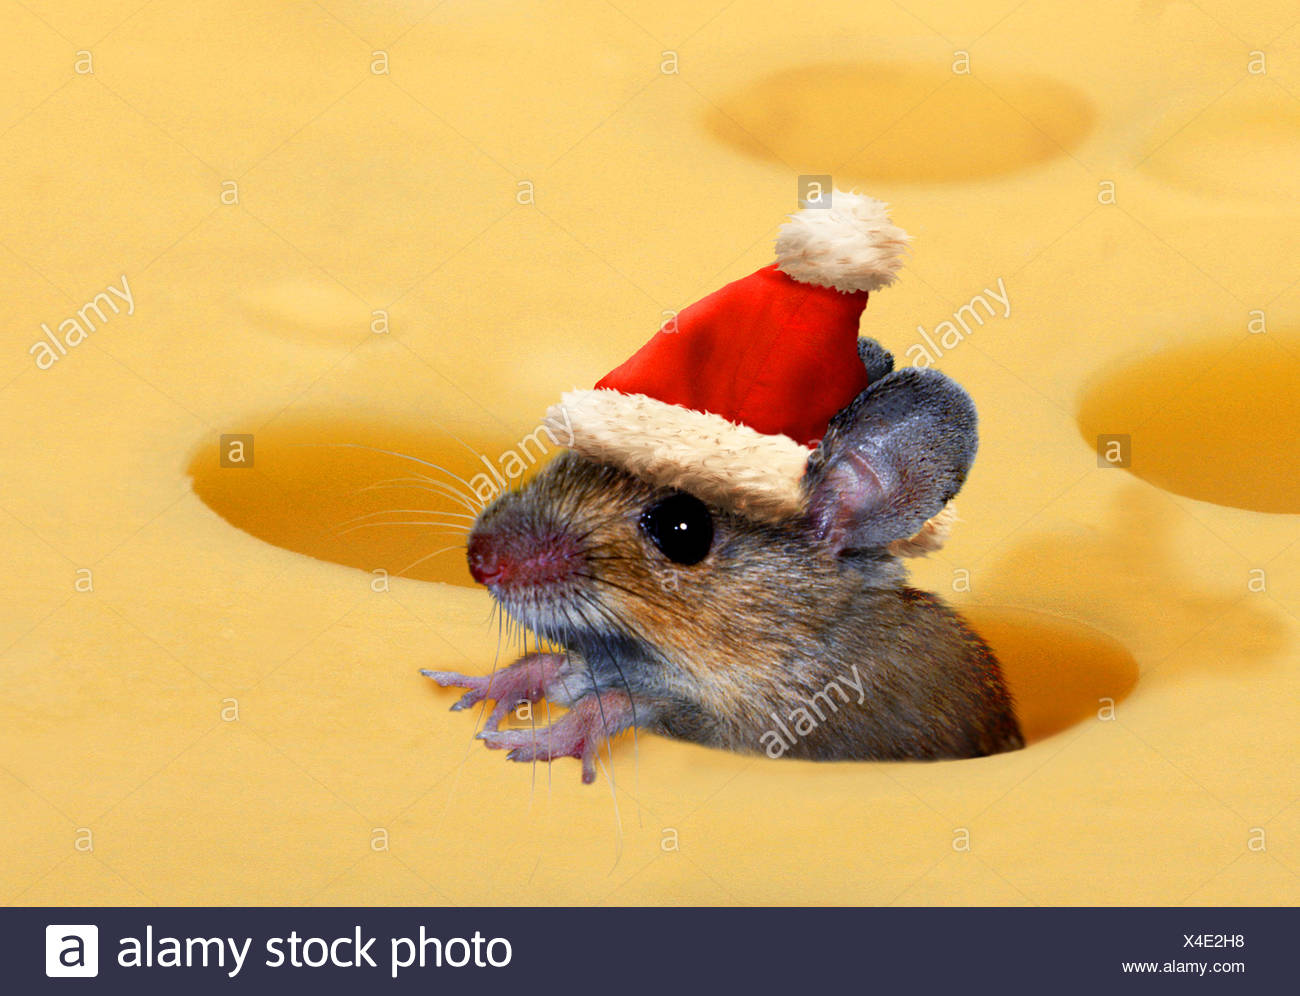 Christmas Mouse.Christmas Mouse With Santa Claus Hat In Cheese Stock Photo